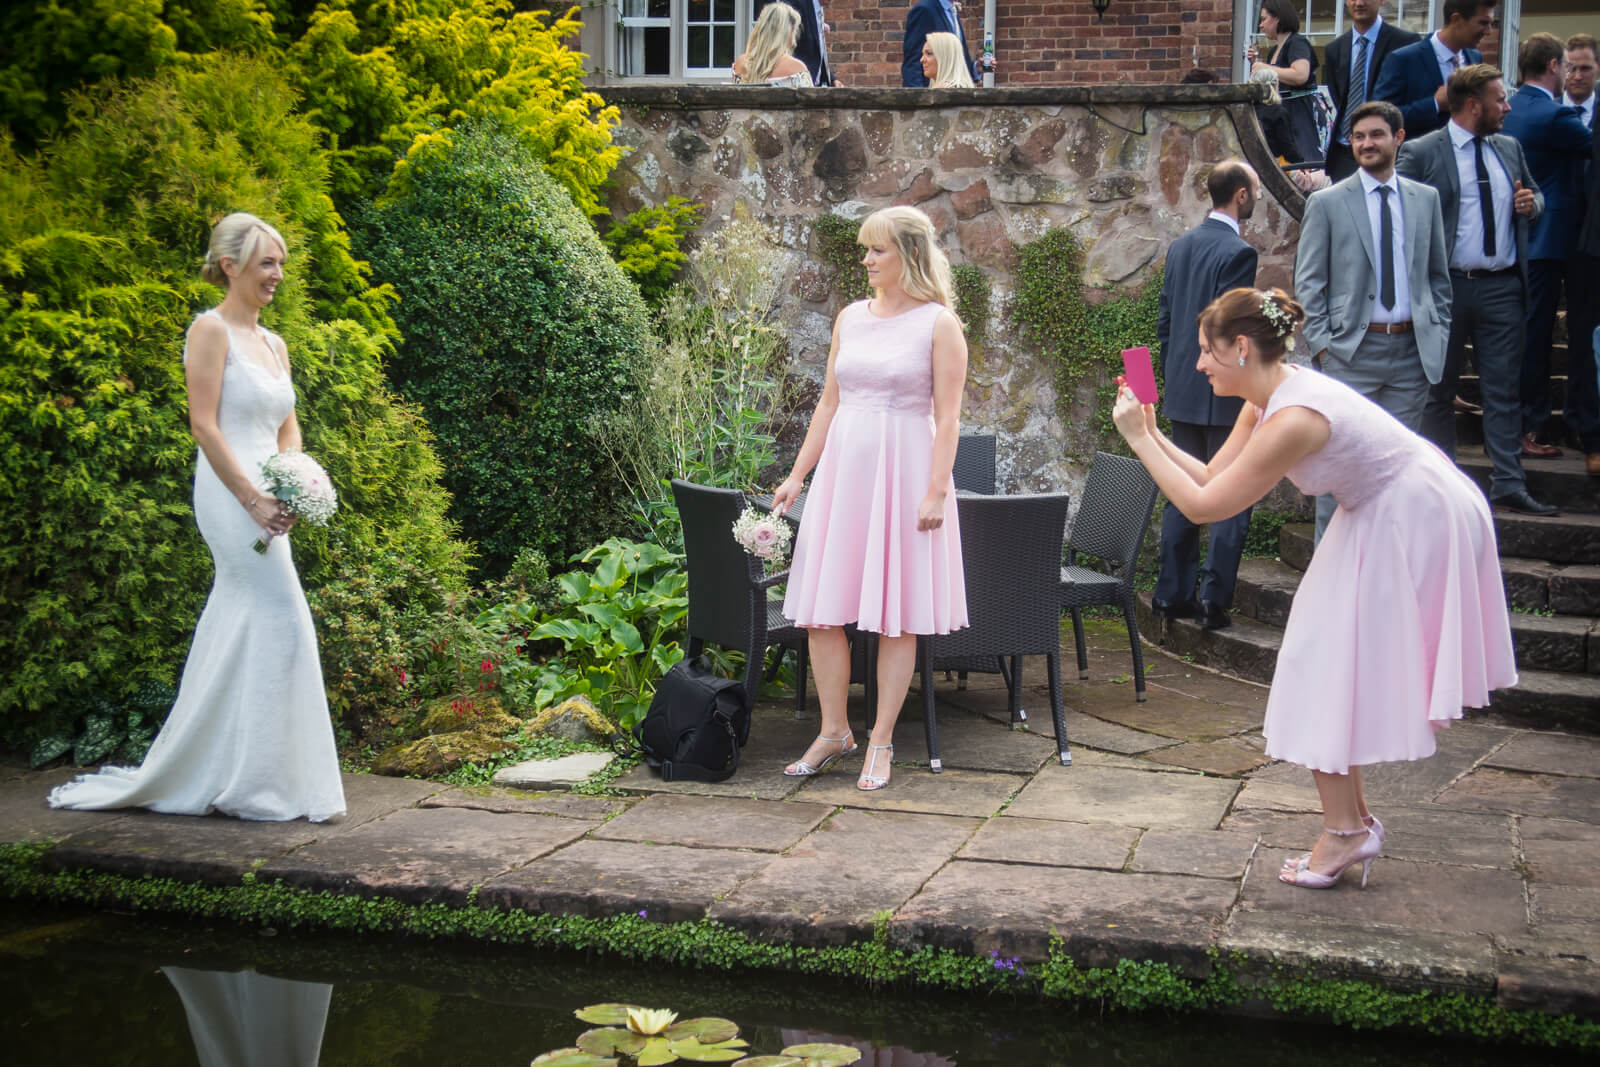 Bridesmaids take pictures of the bride on their mobile phones